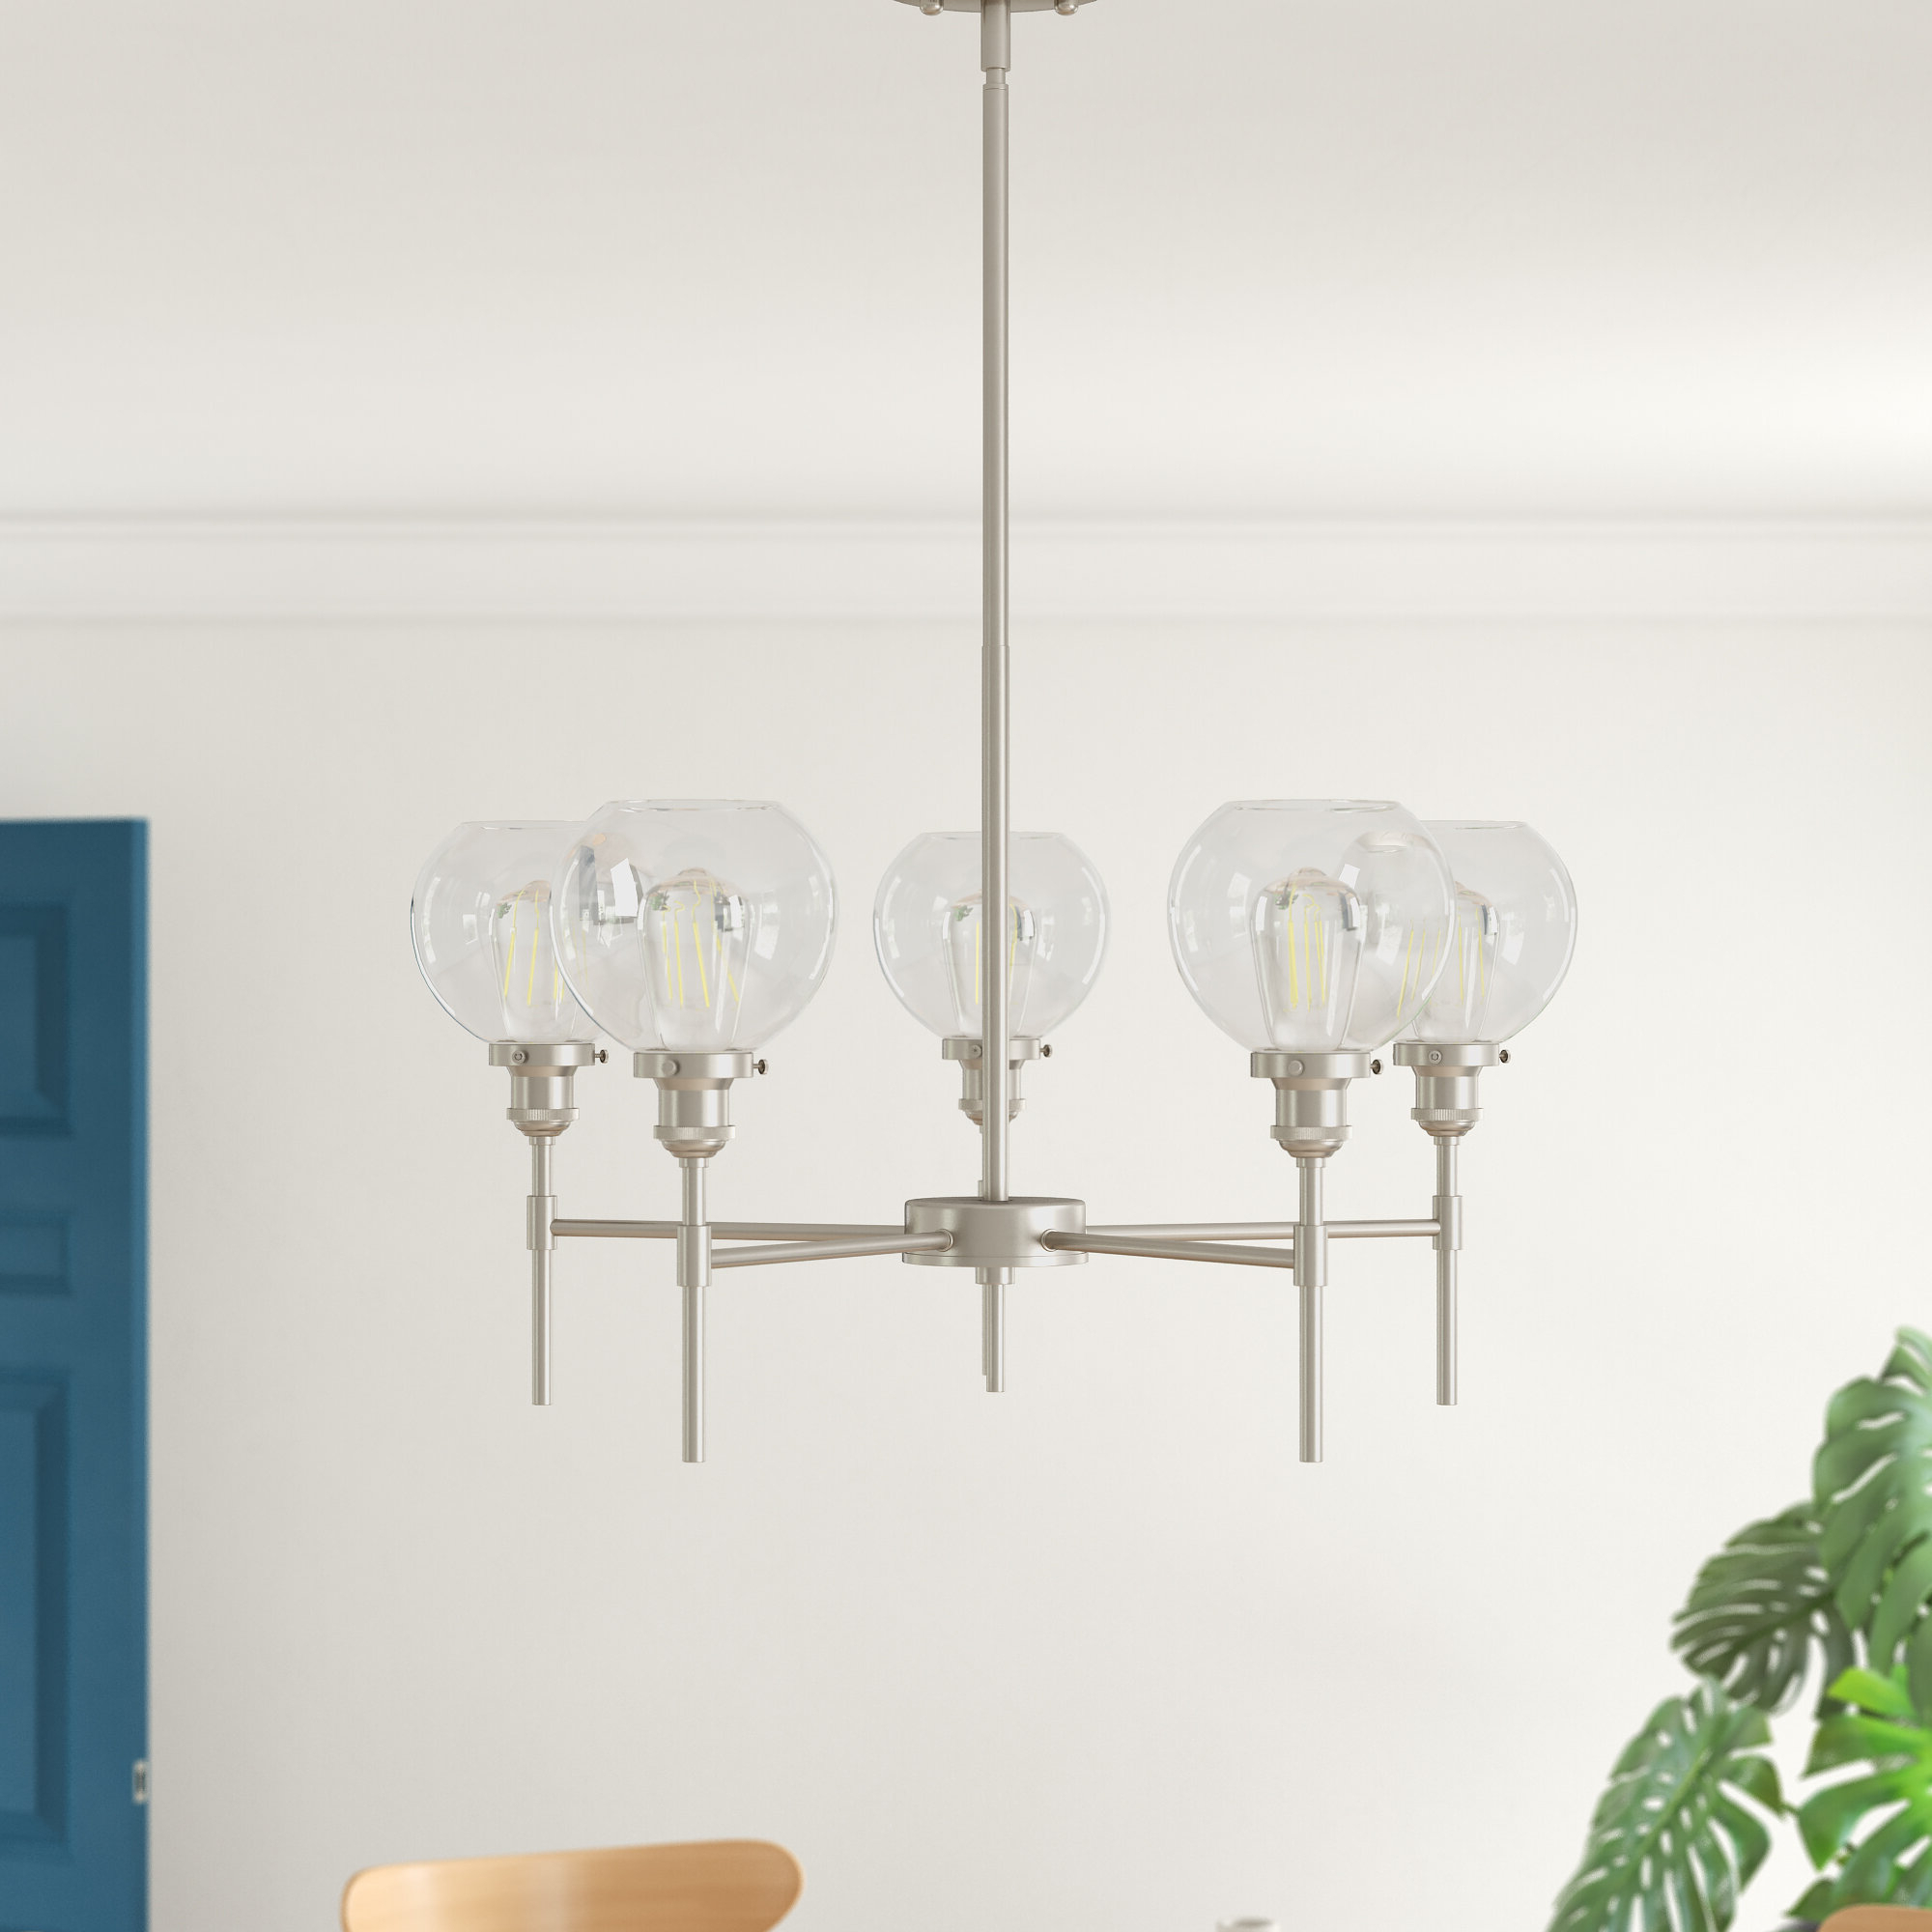 Sherri 6 Light Chandeliers Pertaining To Well Known Dunneback 5 Light Shaded Chandelier (Gallery 15 of 20)